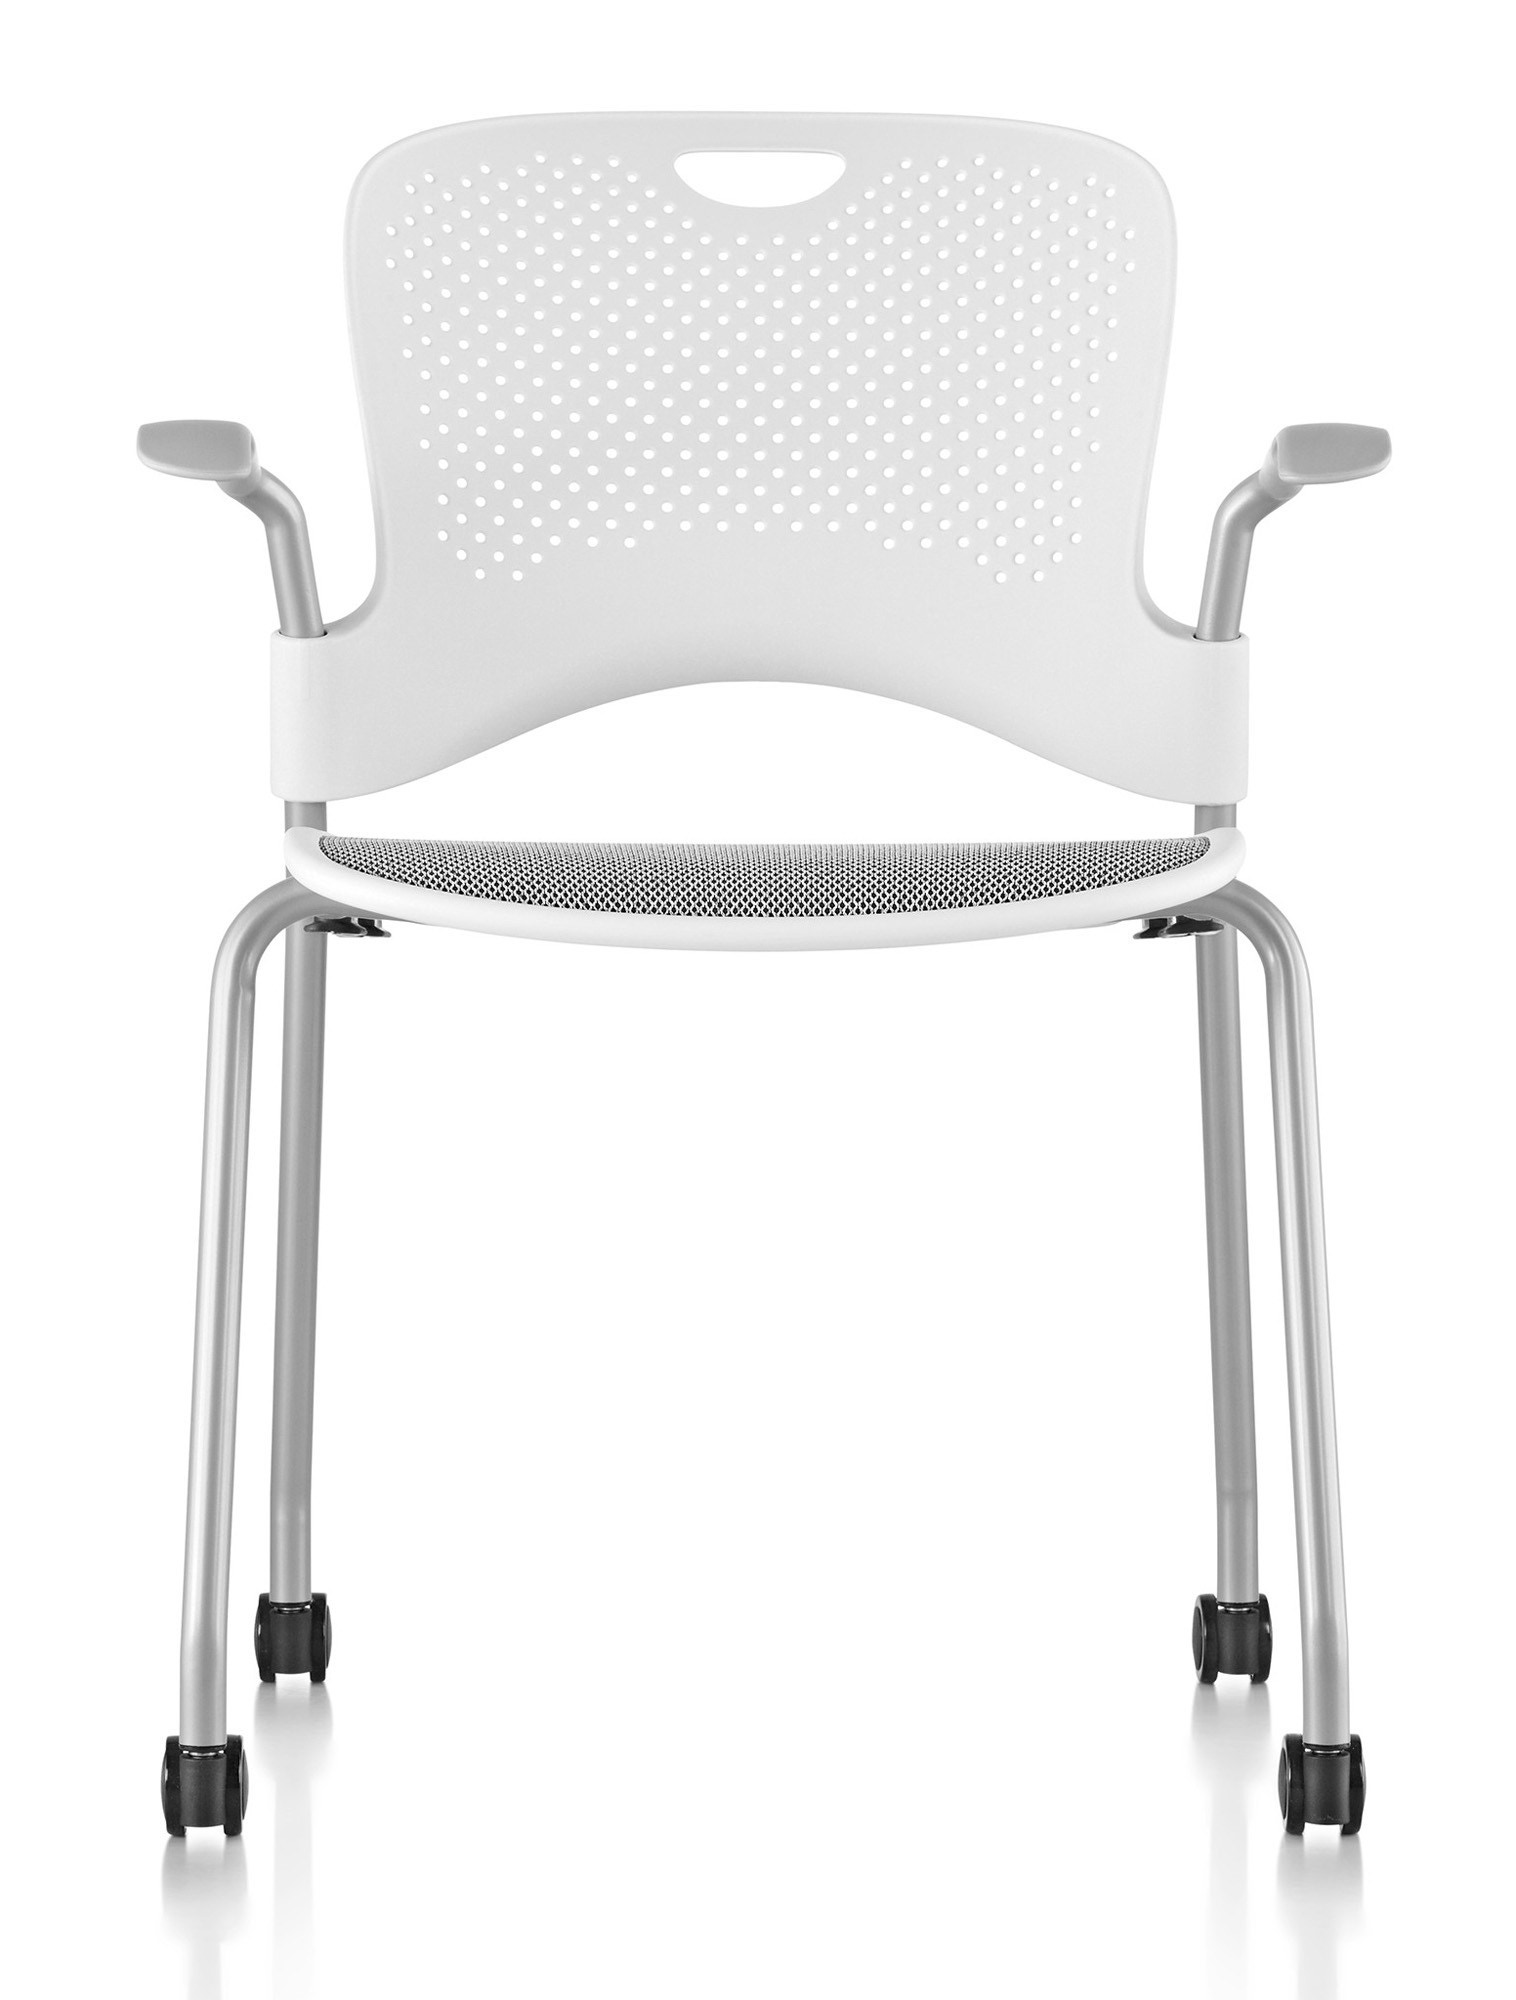 nesting shop hon atwork chair stacking leg canada furniture office f folding motivate chairs